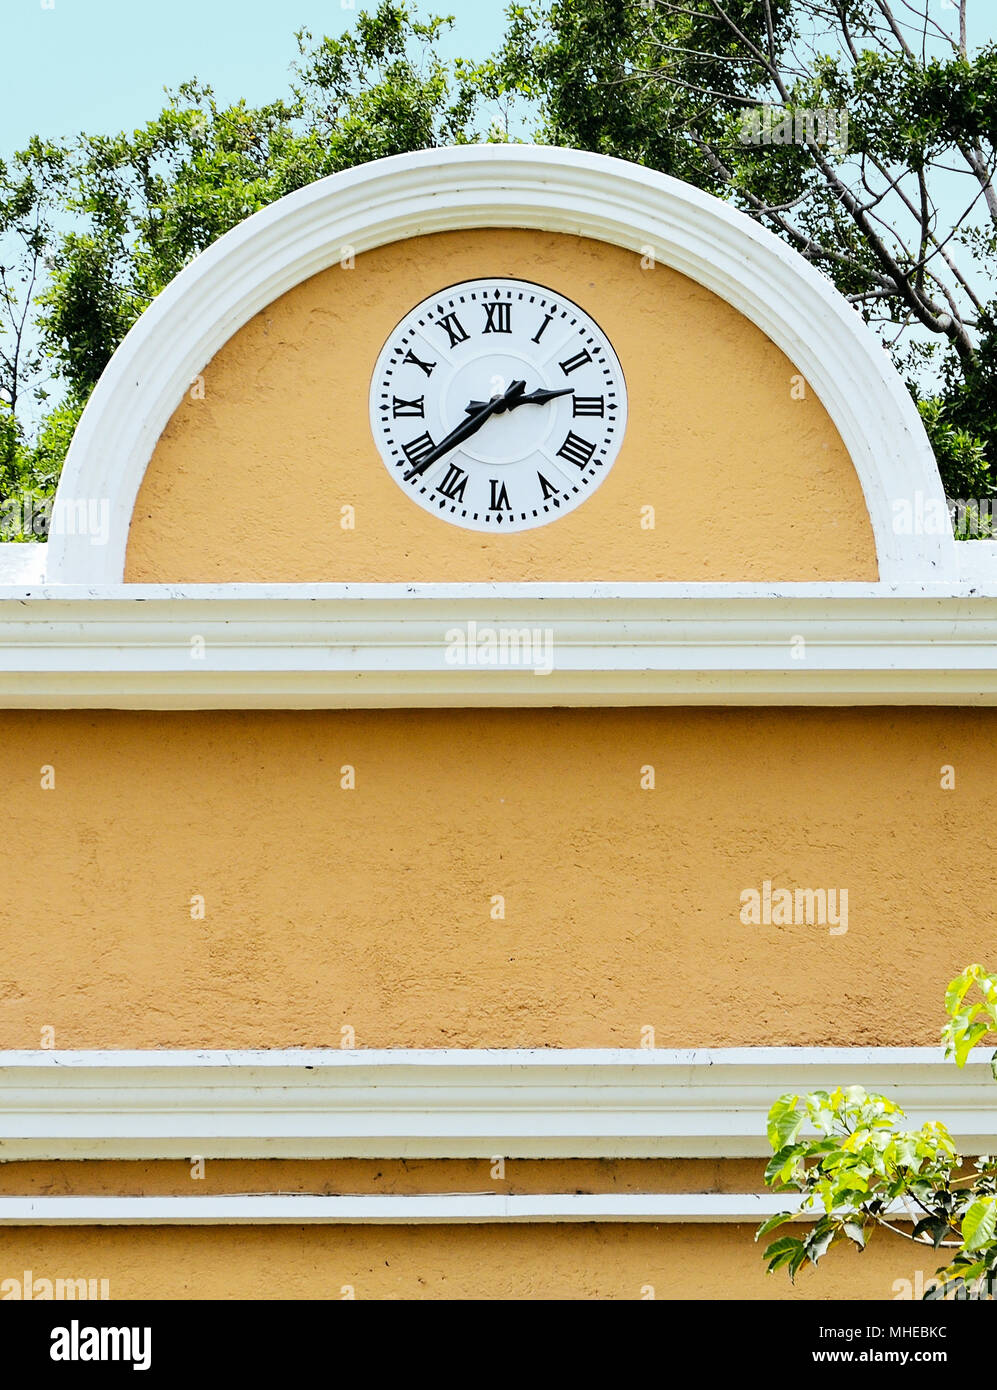 Old clock on the facade of a sugar mill hacienda in Mexico - Stock Image